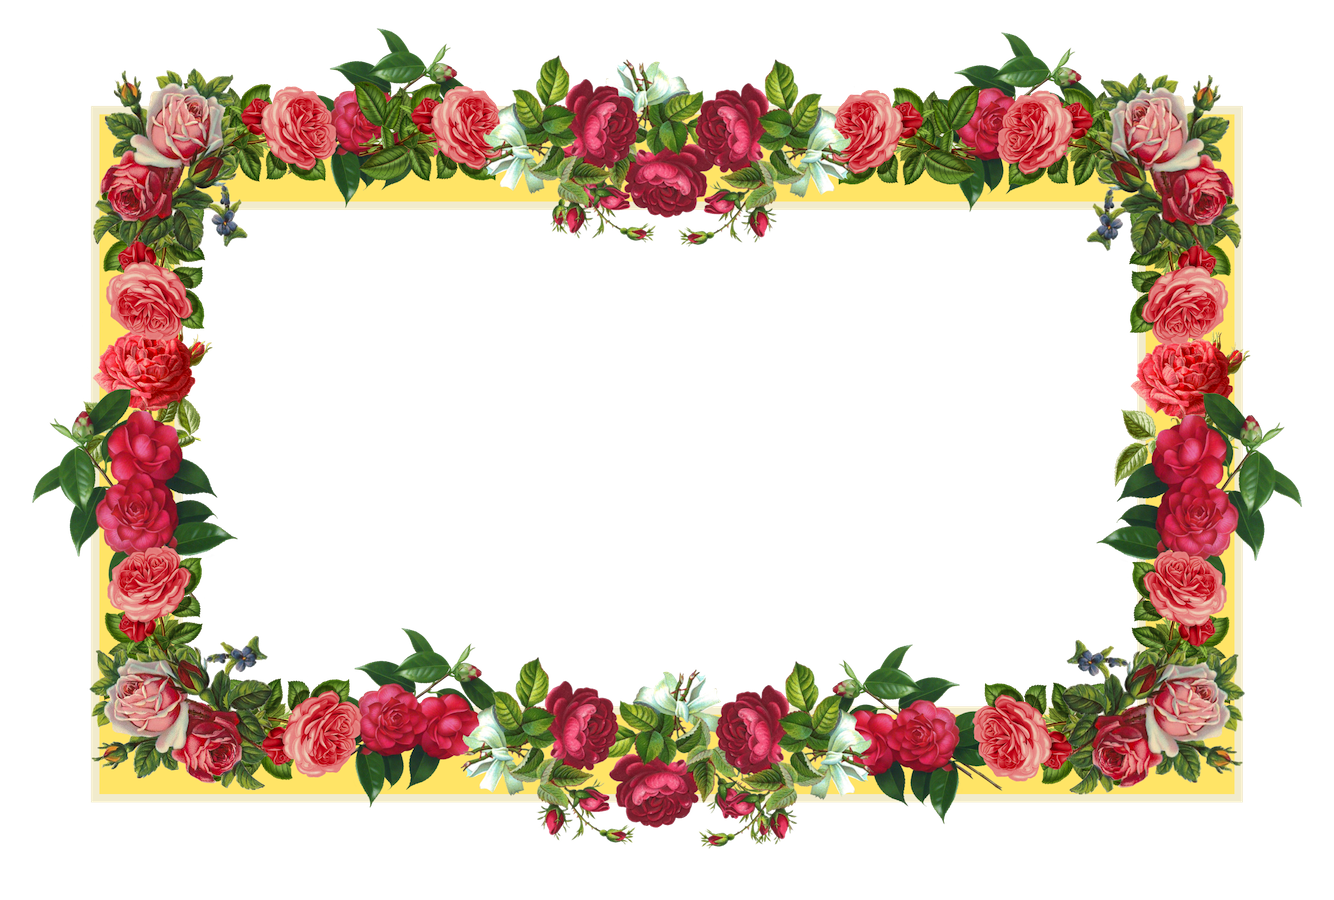 png free library Rose flower png transparentpng. Powerpoint clipart borders